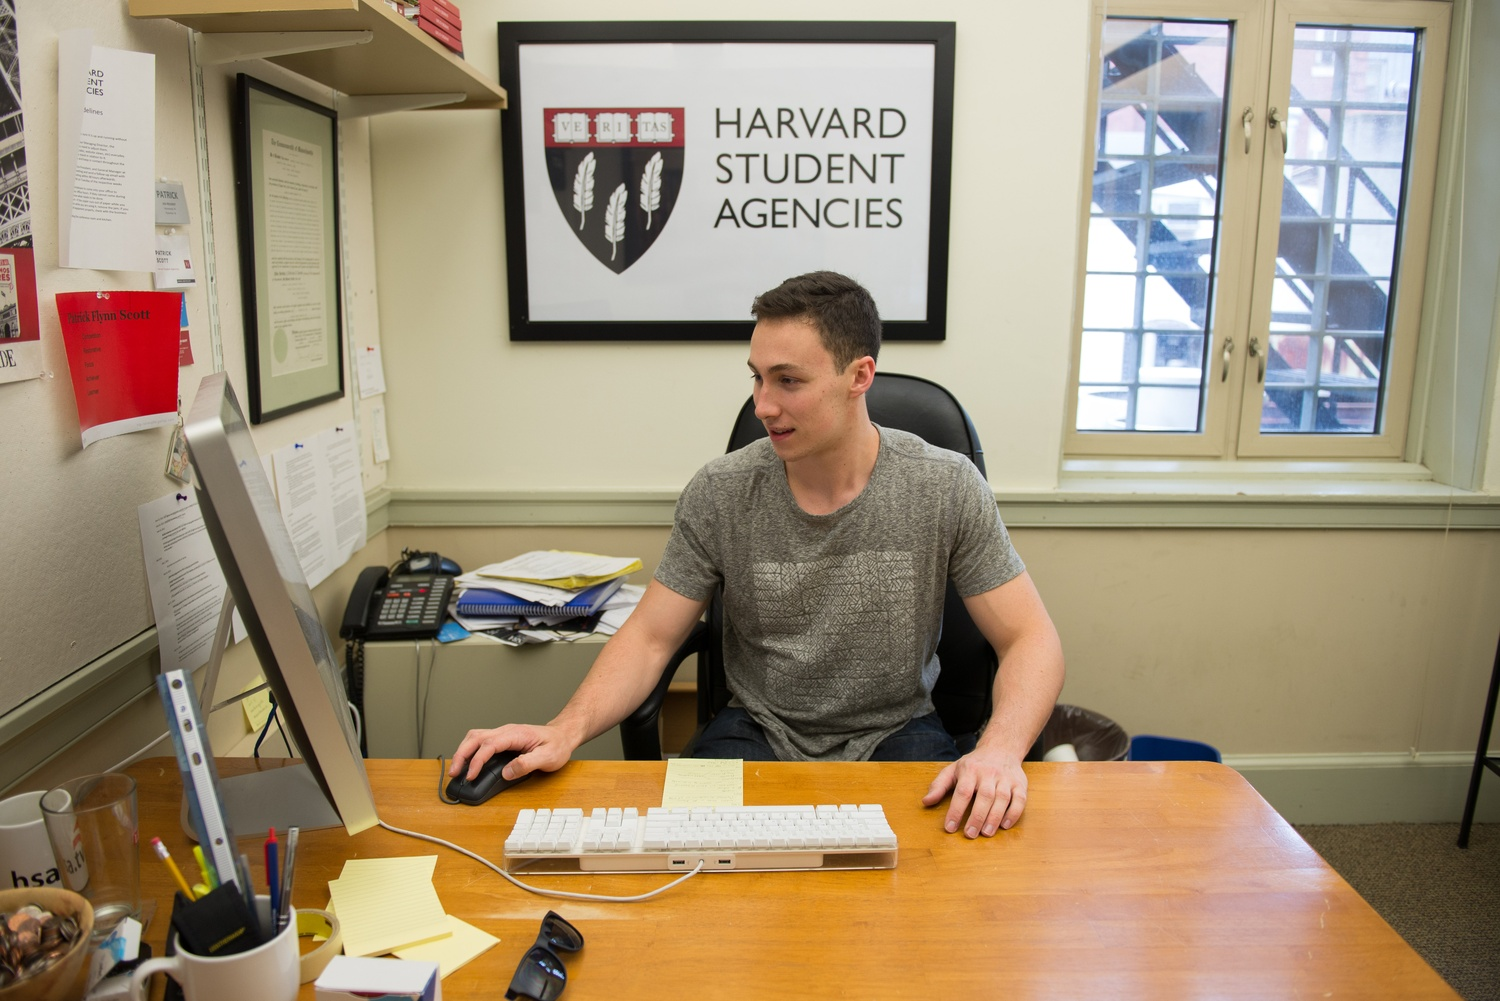 Patrick F. Scott '16, president of Harvard Student Agencies, responds to e-mails in his office in the HSA building. Scott first joined the organization as a laundry deliverer.